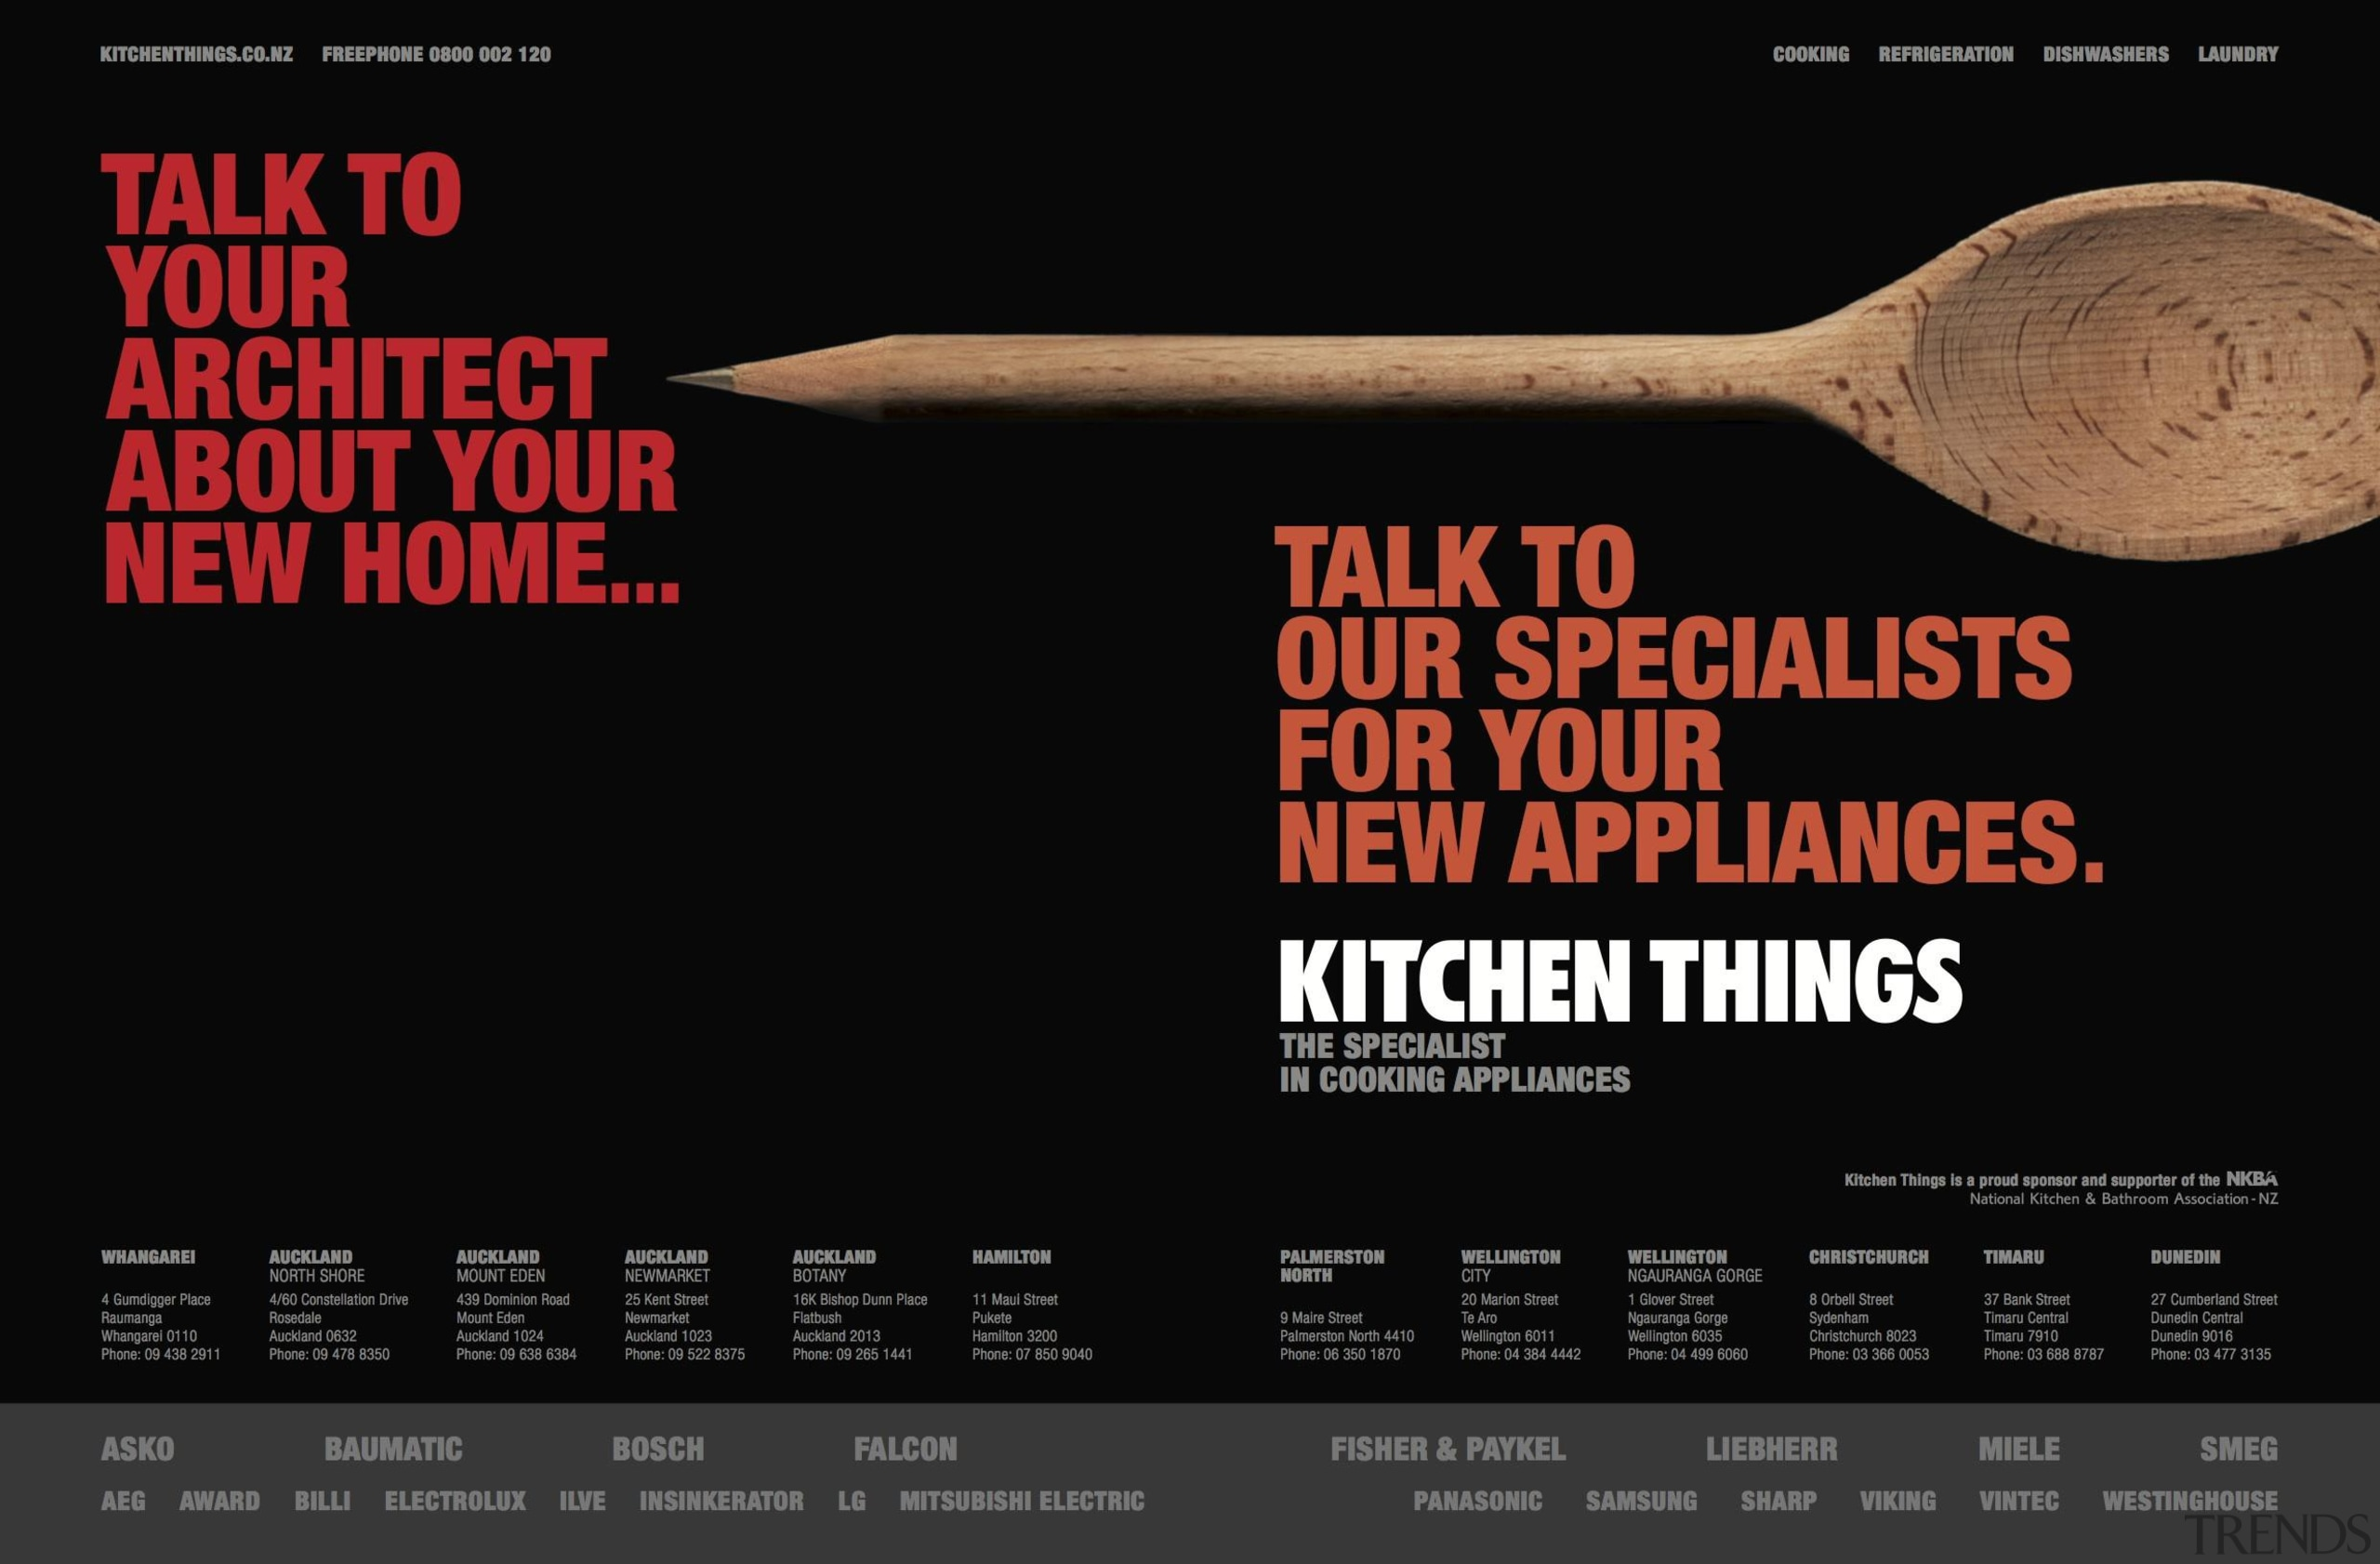 T2 Agency conceptualised a brand advert for publication advertising, font, poster, website, black